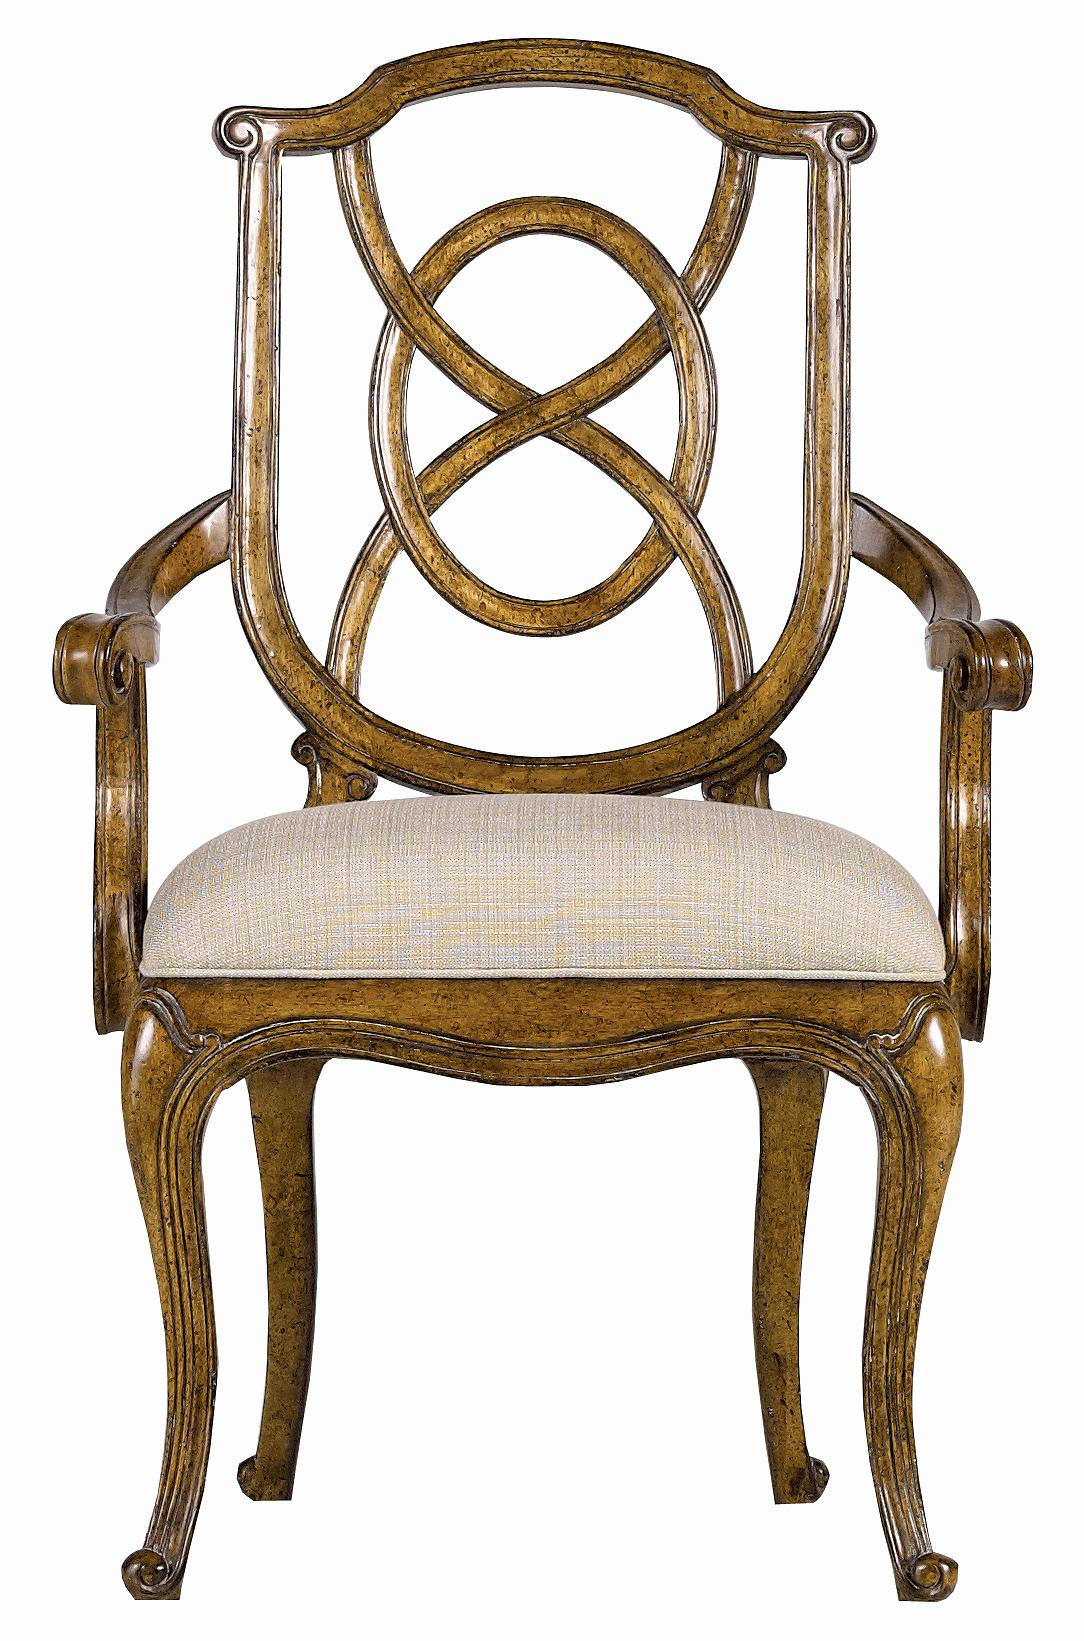 Stanley Furniture Arrondissement Tuileries Arm Chair - Item Number: 222-61-70